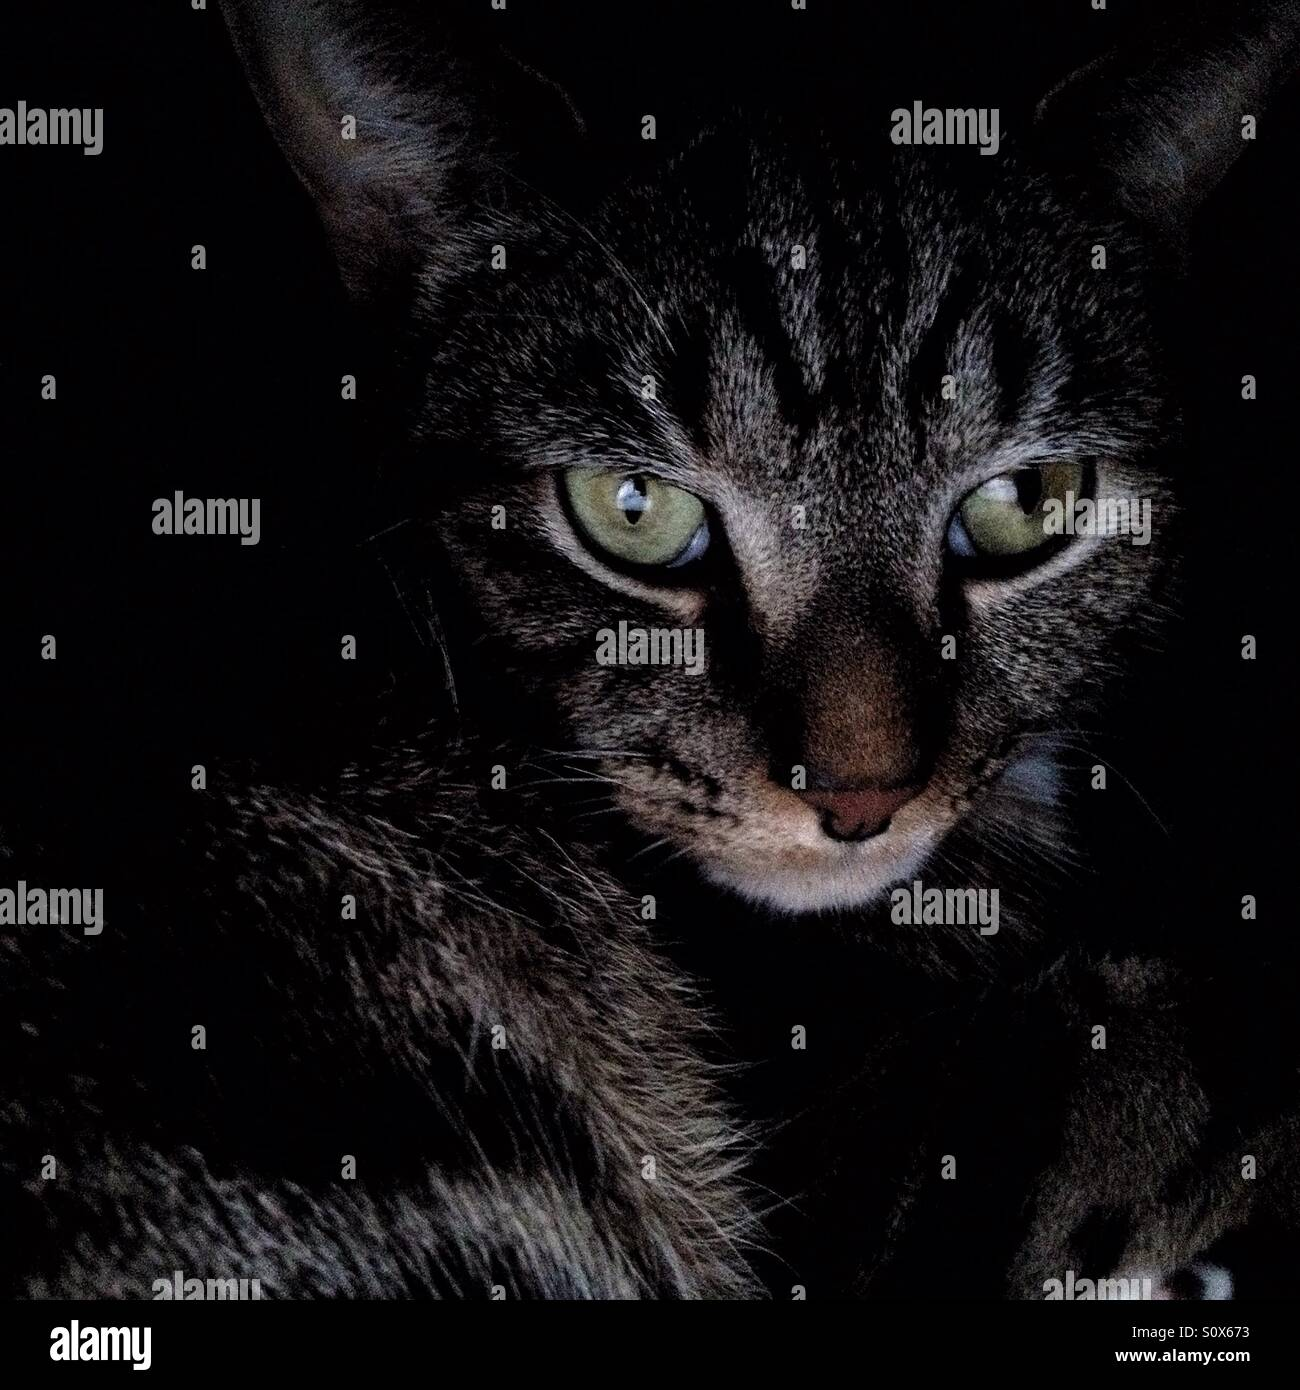 Cat in shadow. - Stock Image